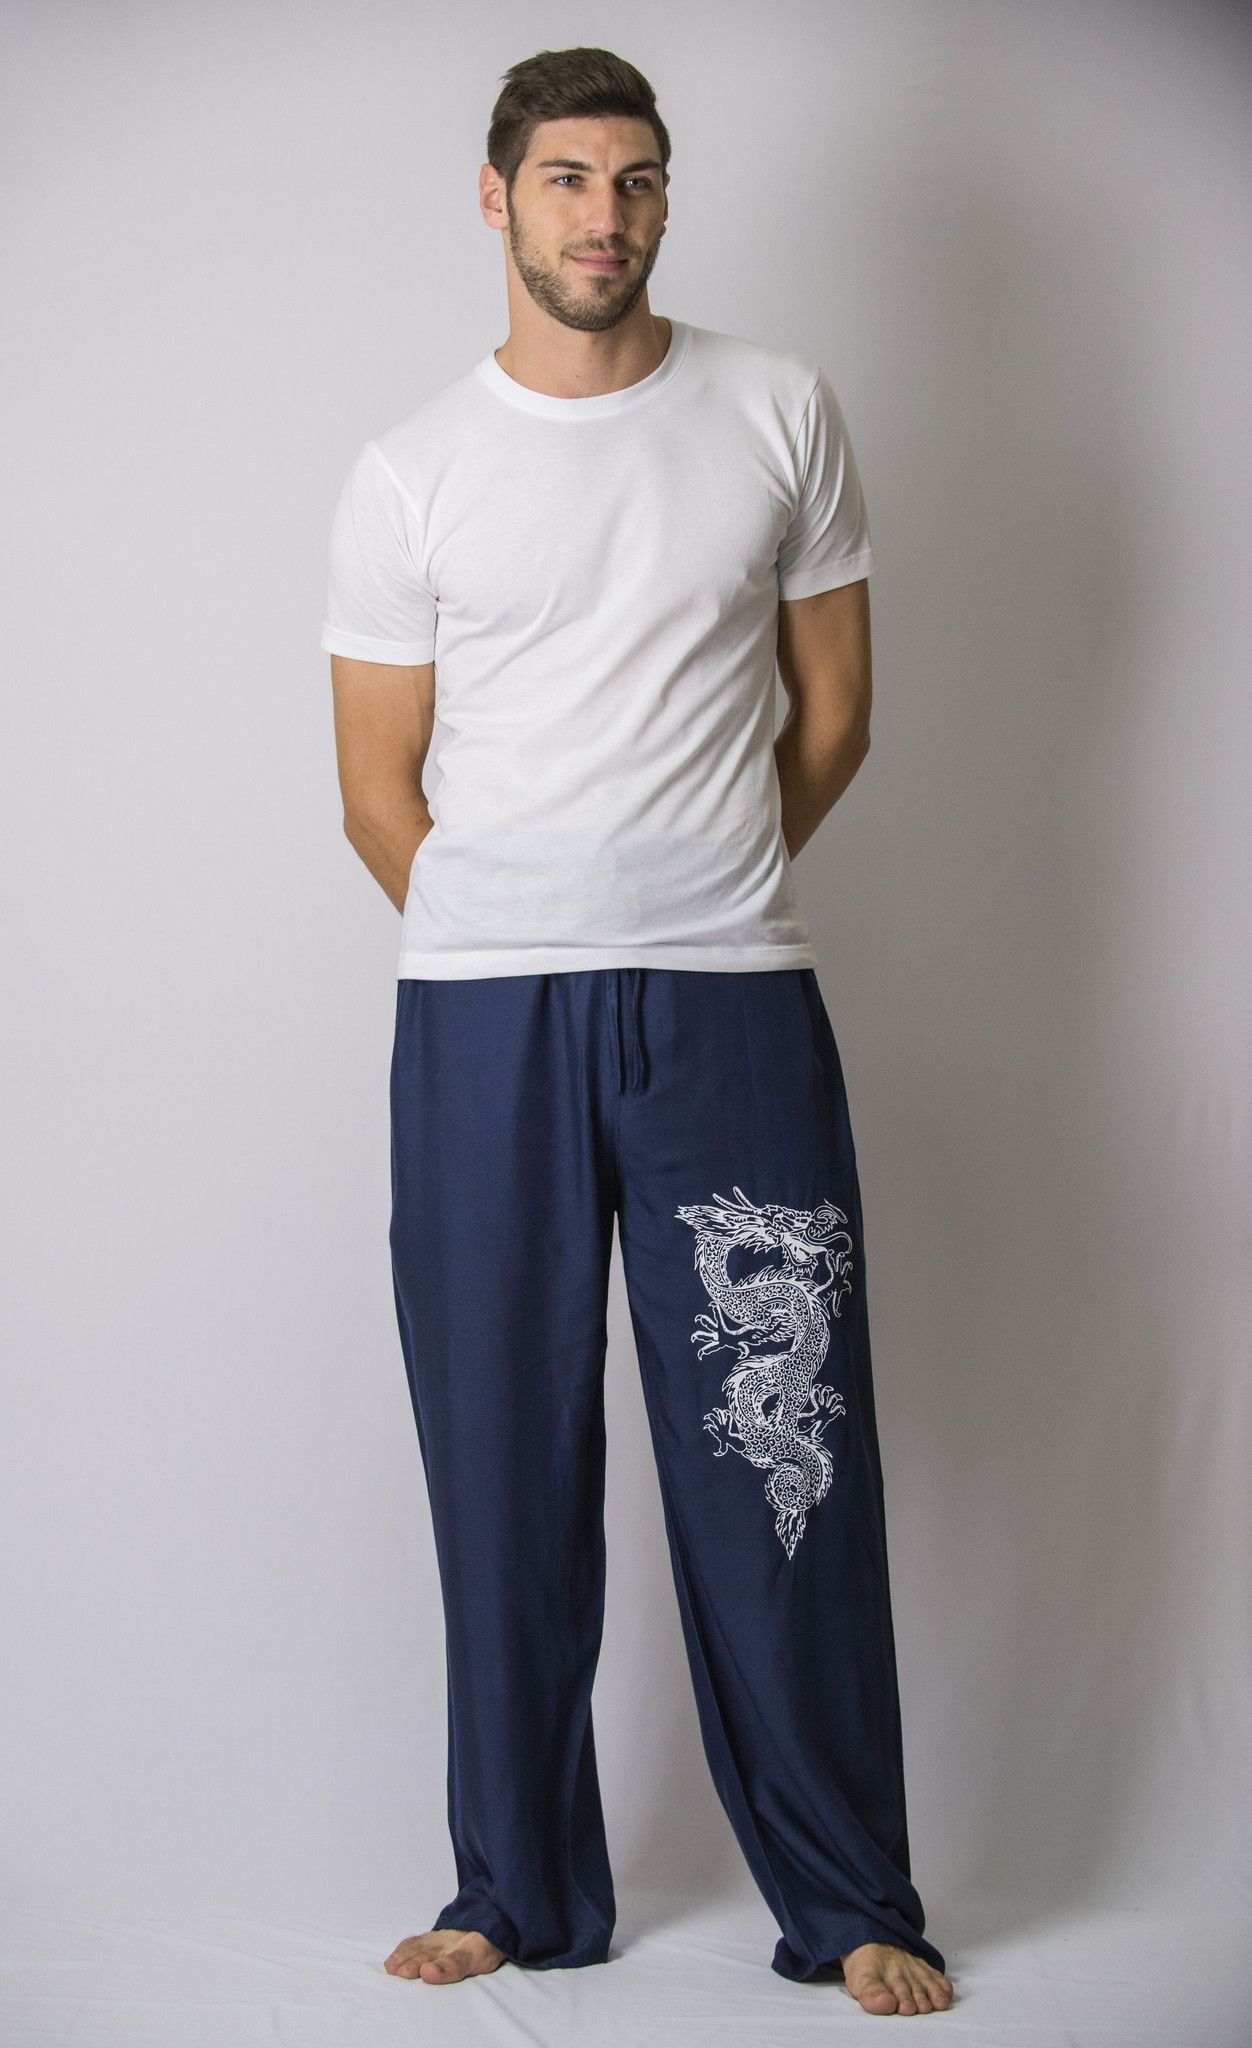 The Dragon Men s Thai Yoga Pants in Navy Ropa De Caballero 56ca1569f2f6